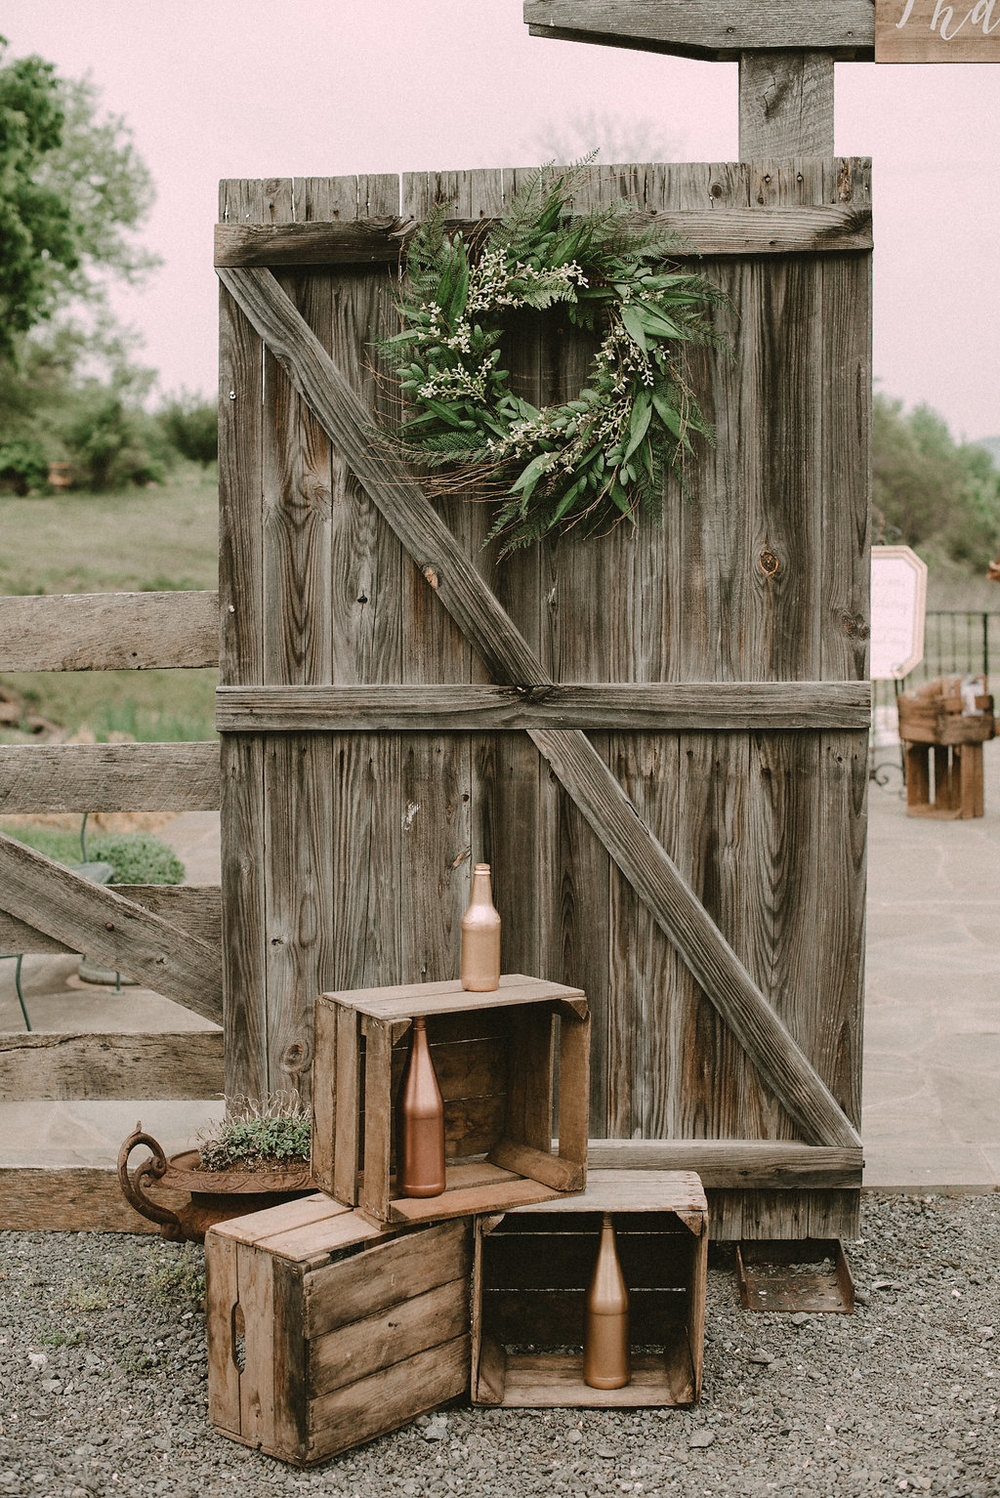 ceremony decor at vintage riverside on the Potomac wedding photo